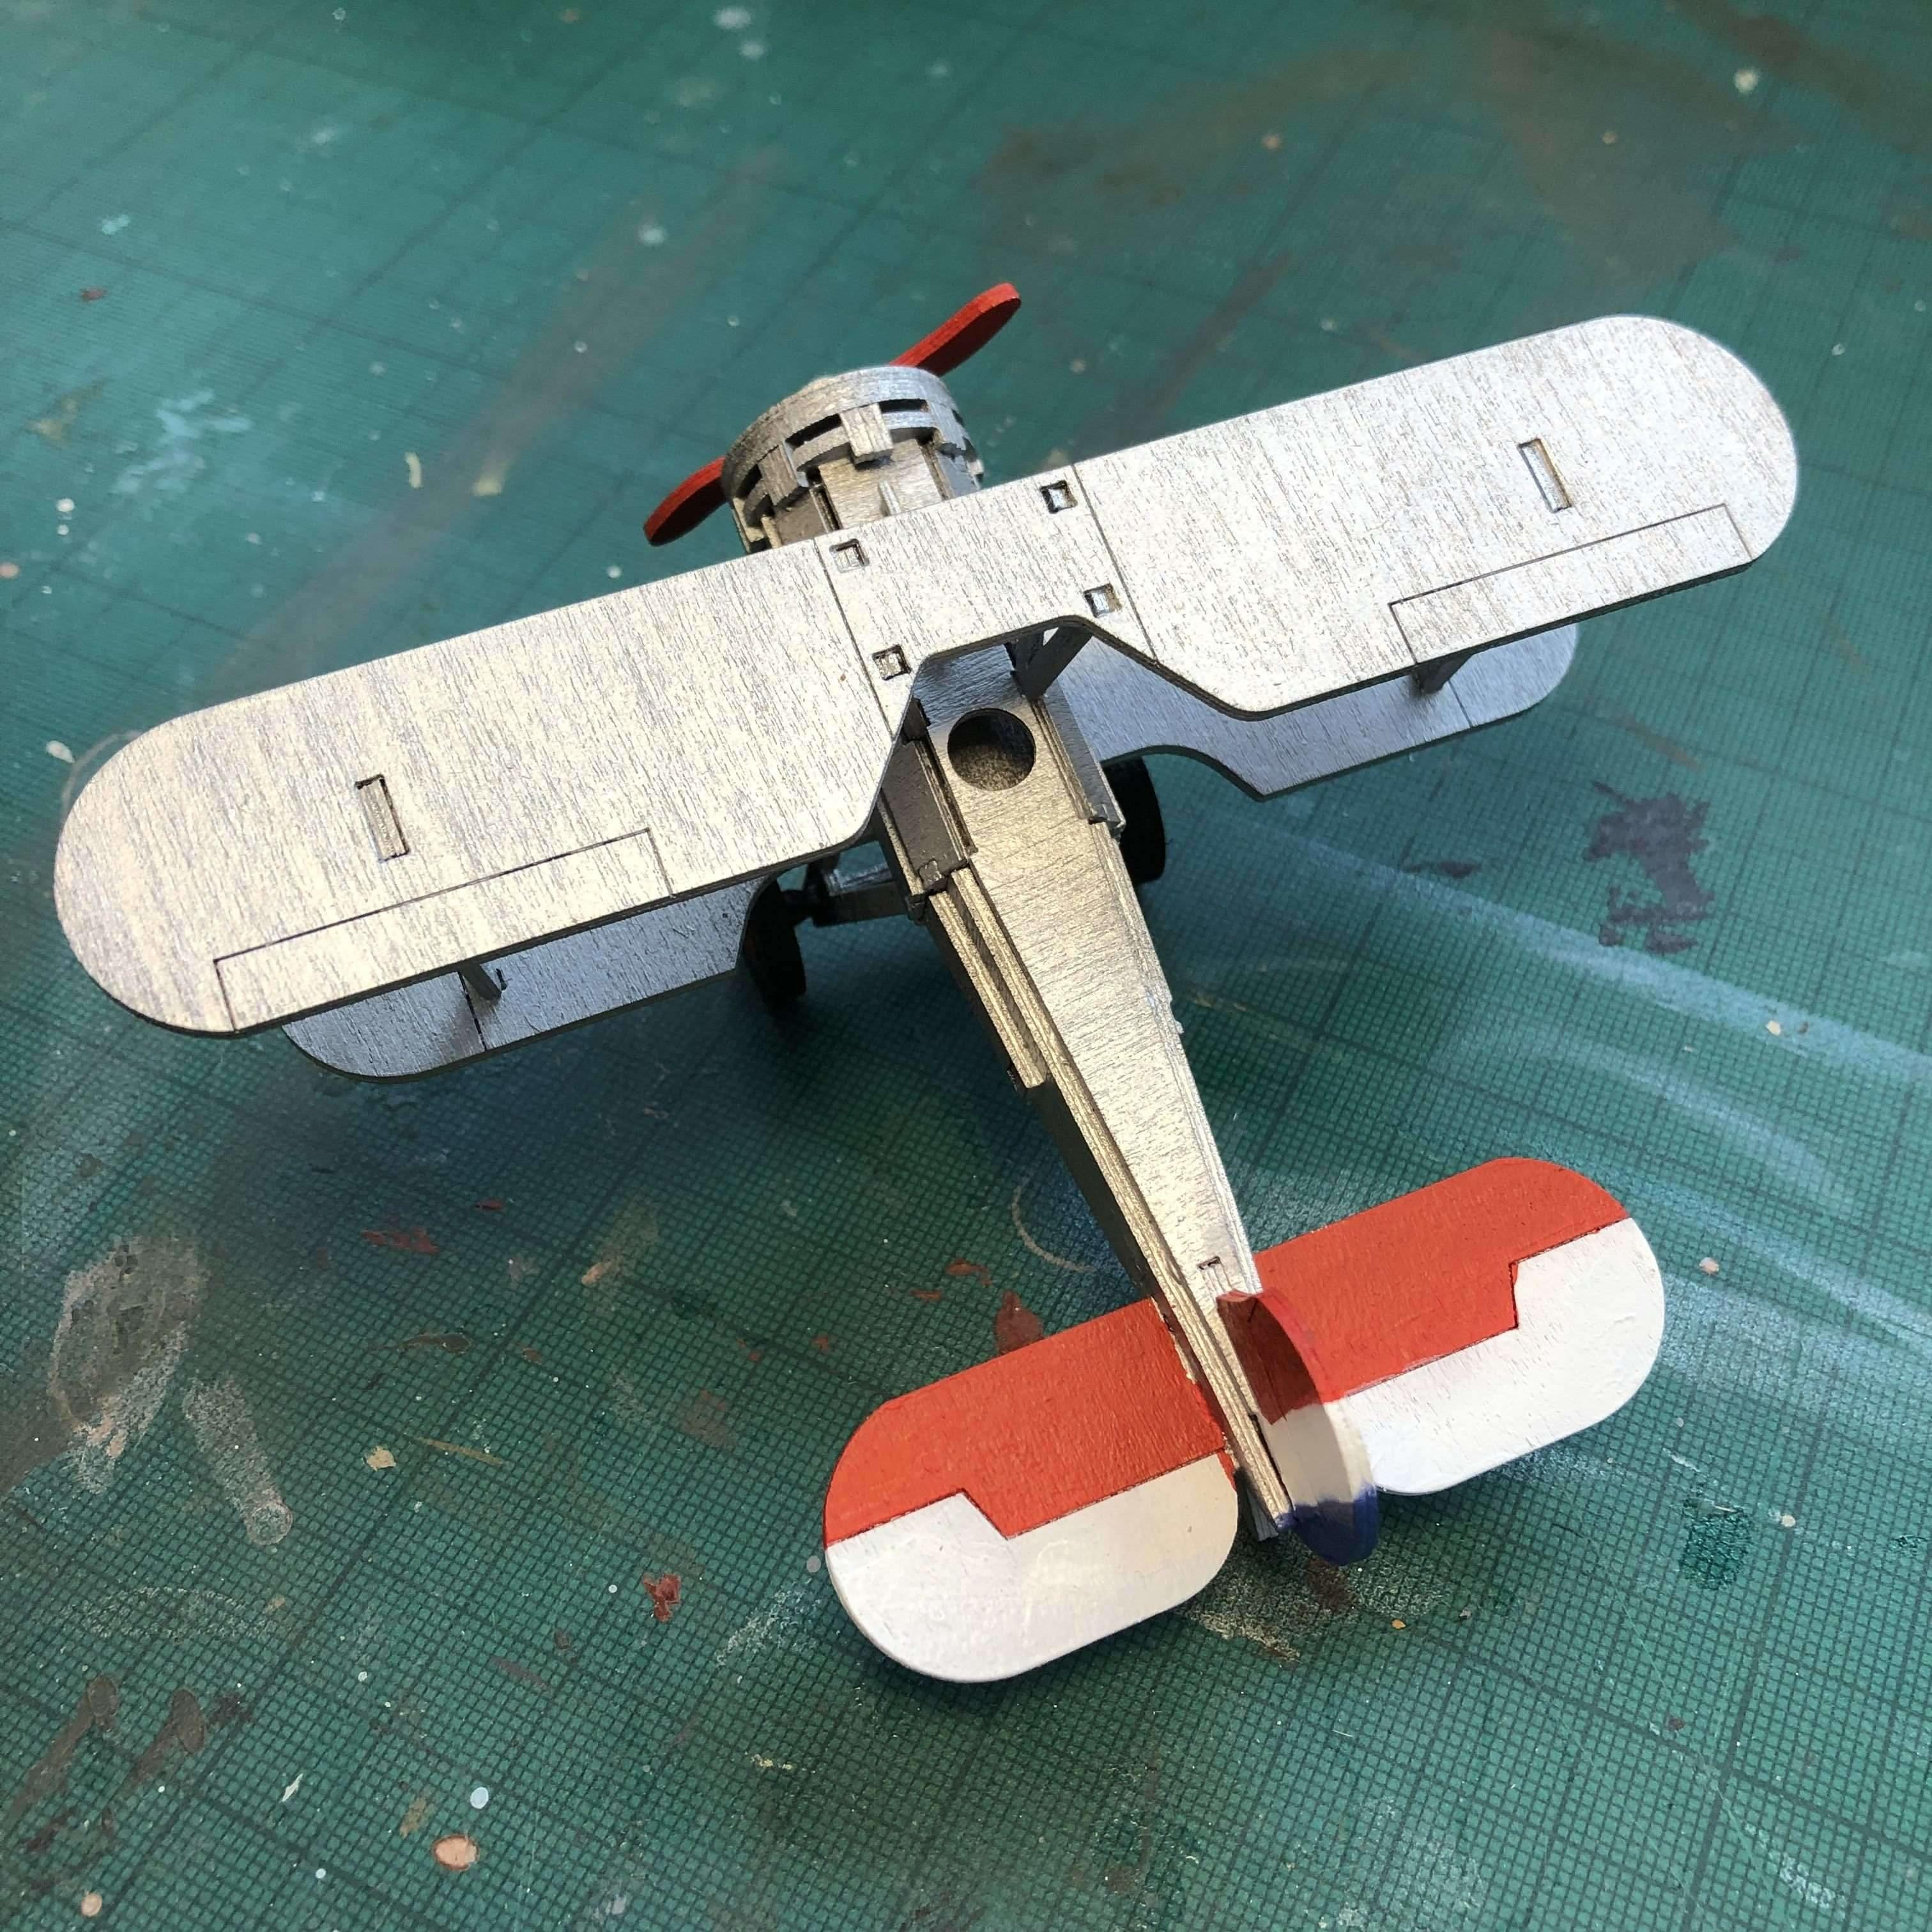 Red Berry Crafts Ltd:Bristol Bulldog F2B Model Kit